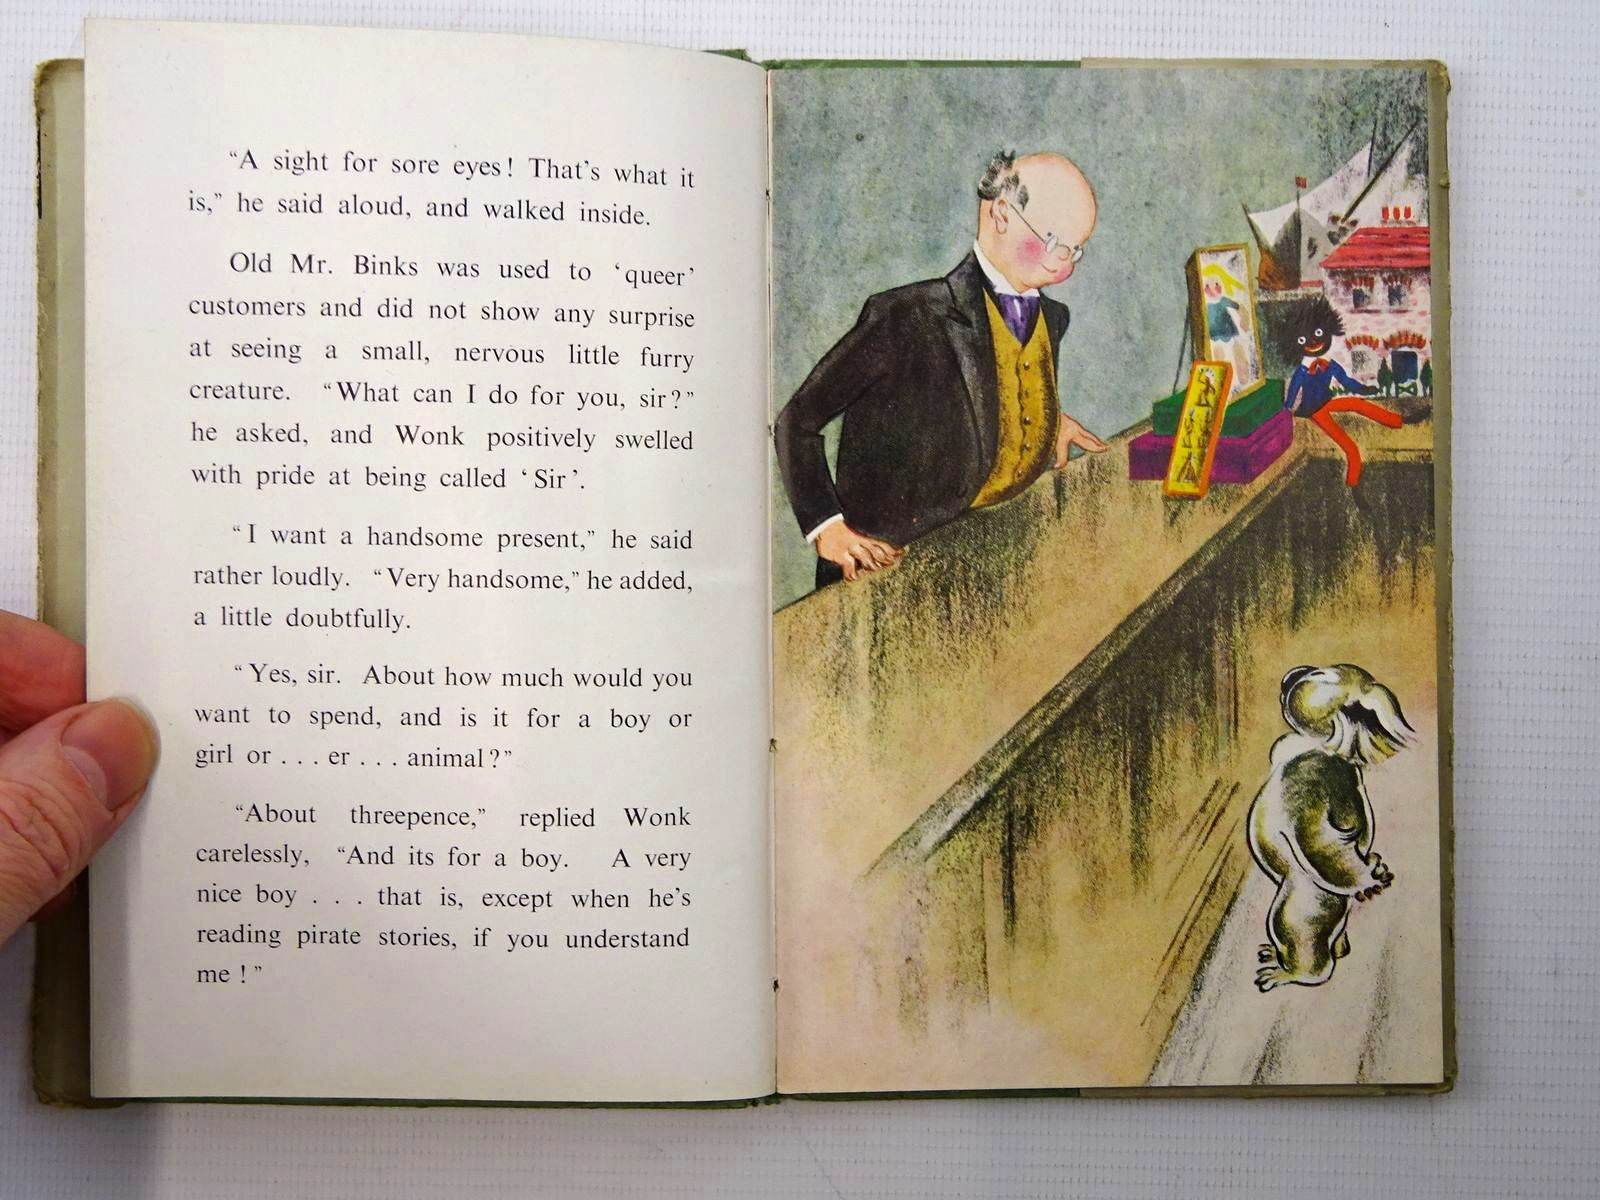 Photo of THE ADVENTURES OF WONK - THE SECRET written by Levy, Muriel illustrated by Kiddell-Monroe, Joan published by Wills & Hepworth Ltd. (STOCK CODE: 2124962)  for sale by Stella & Rose's Books